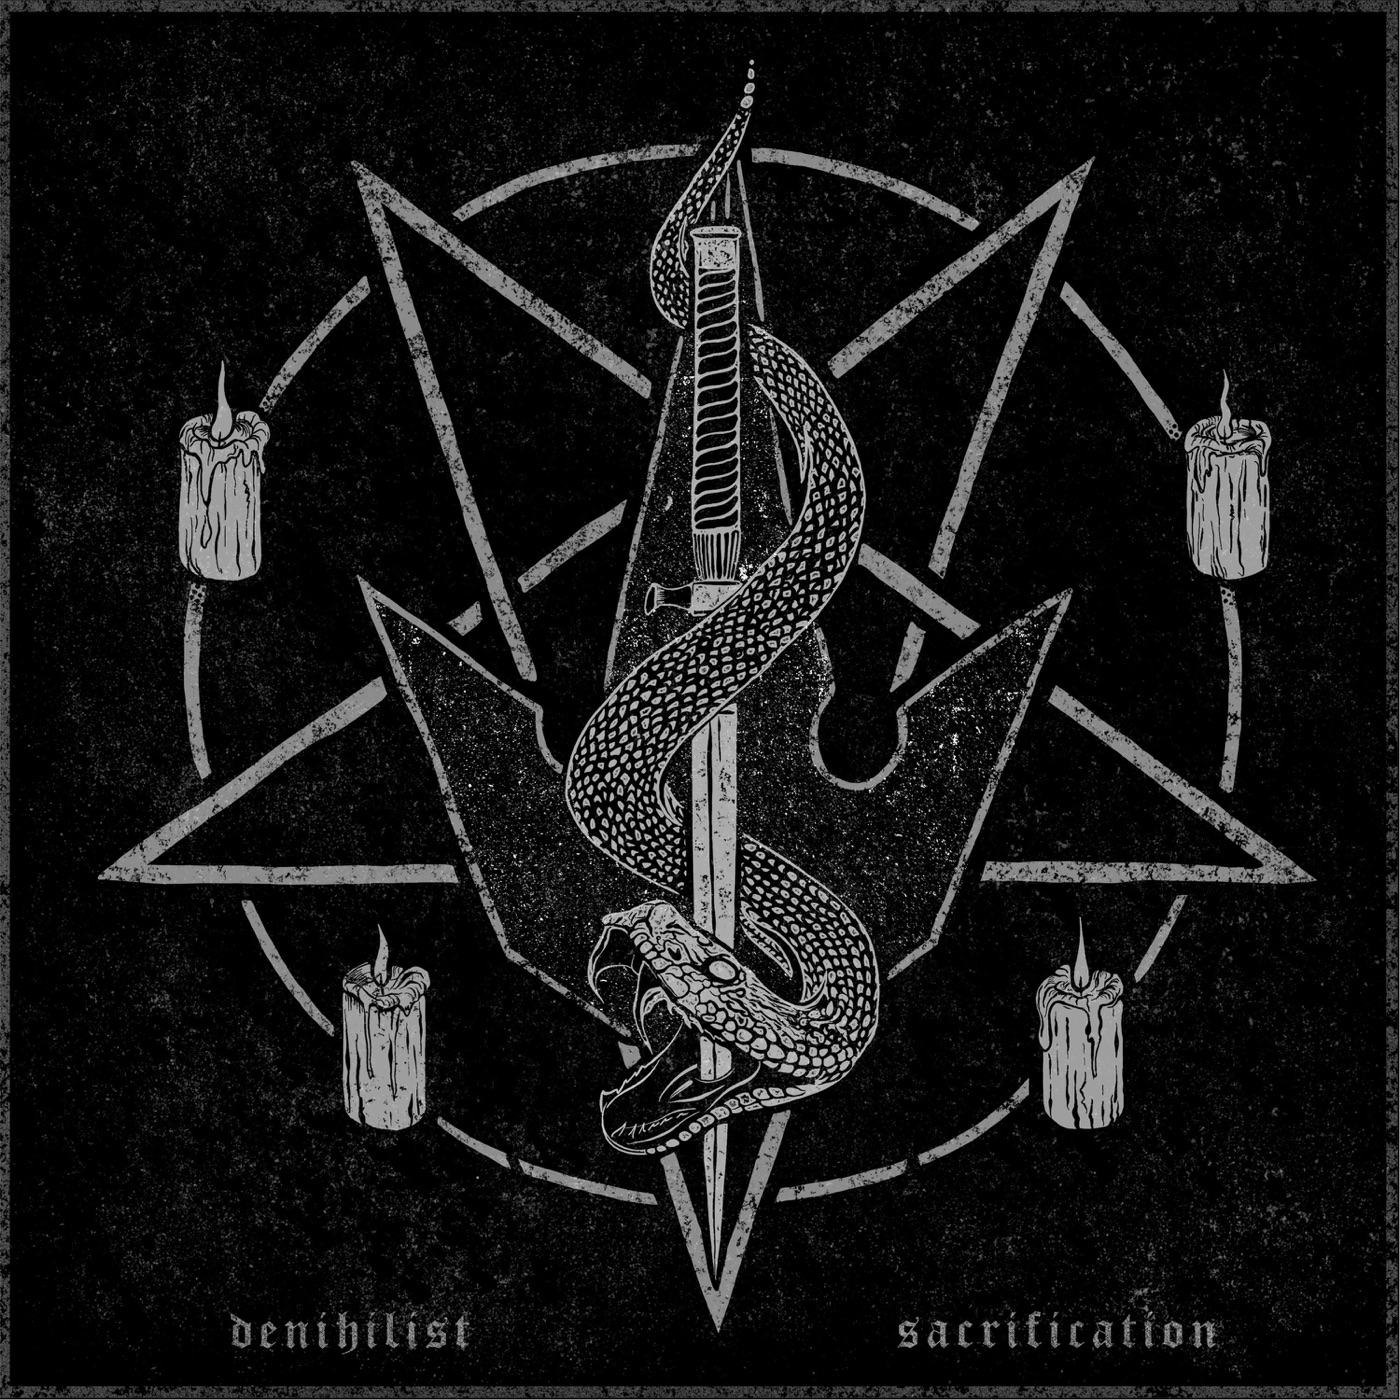 Denihilist - Evocation [single] (2017)